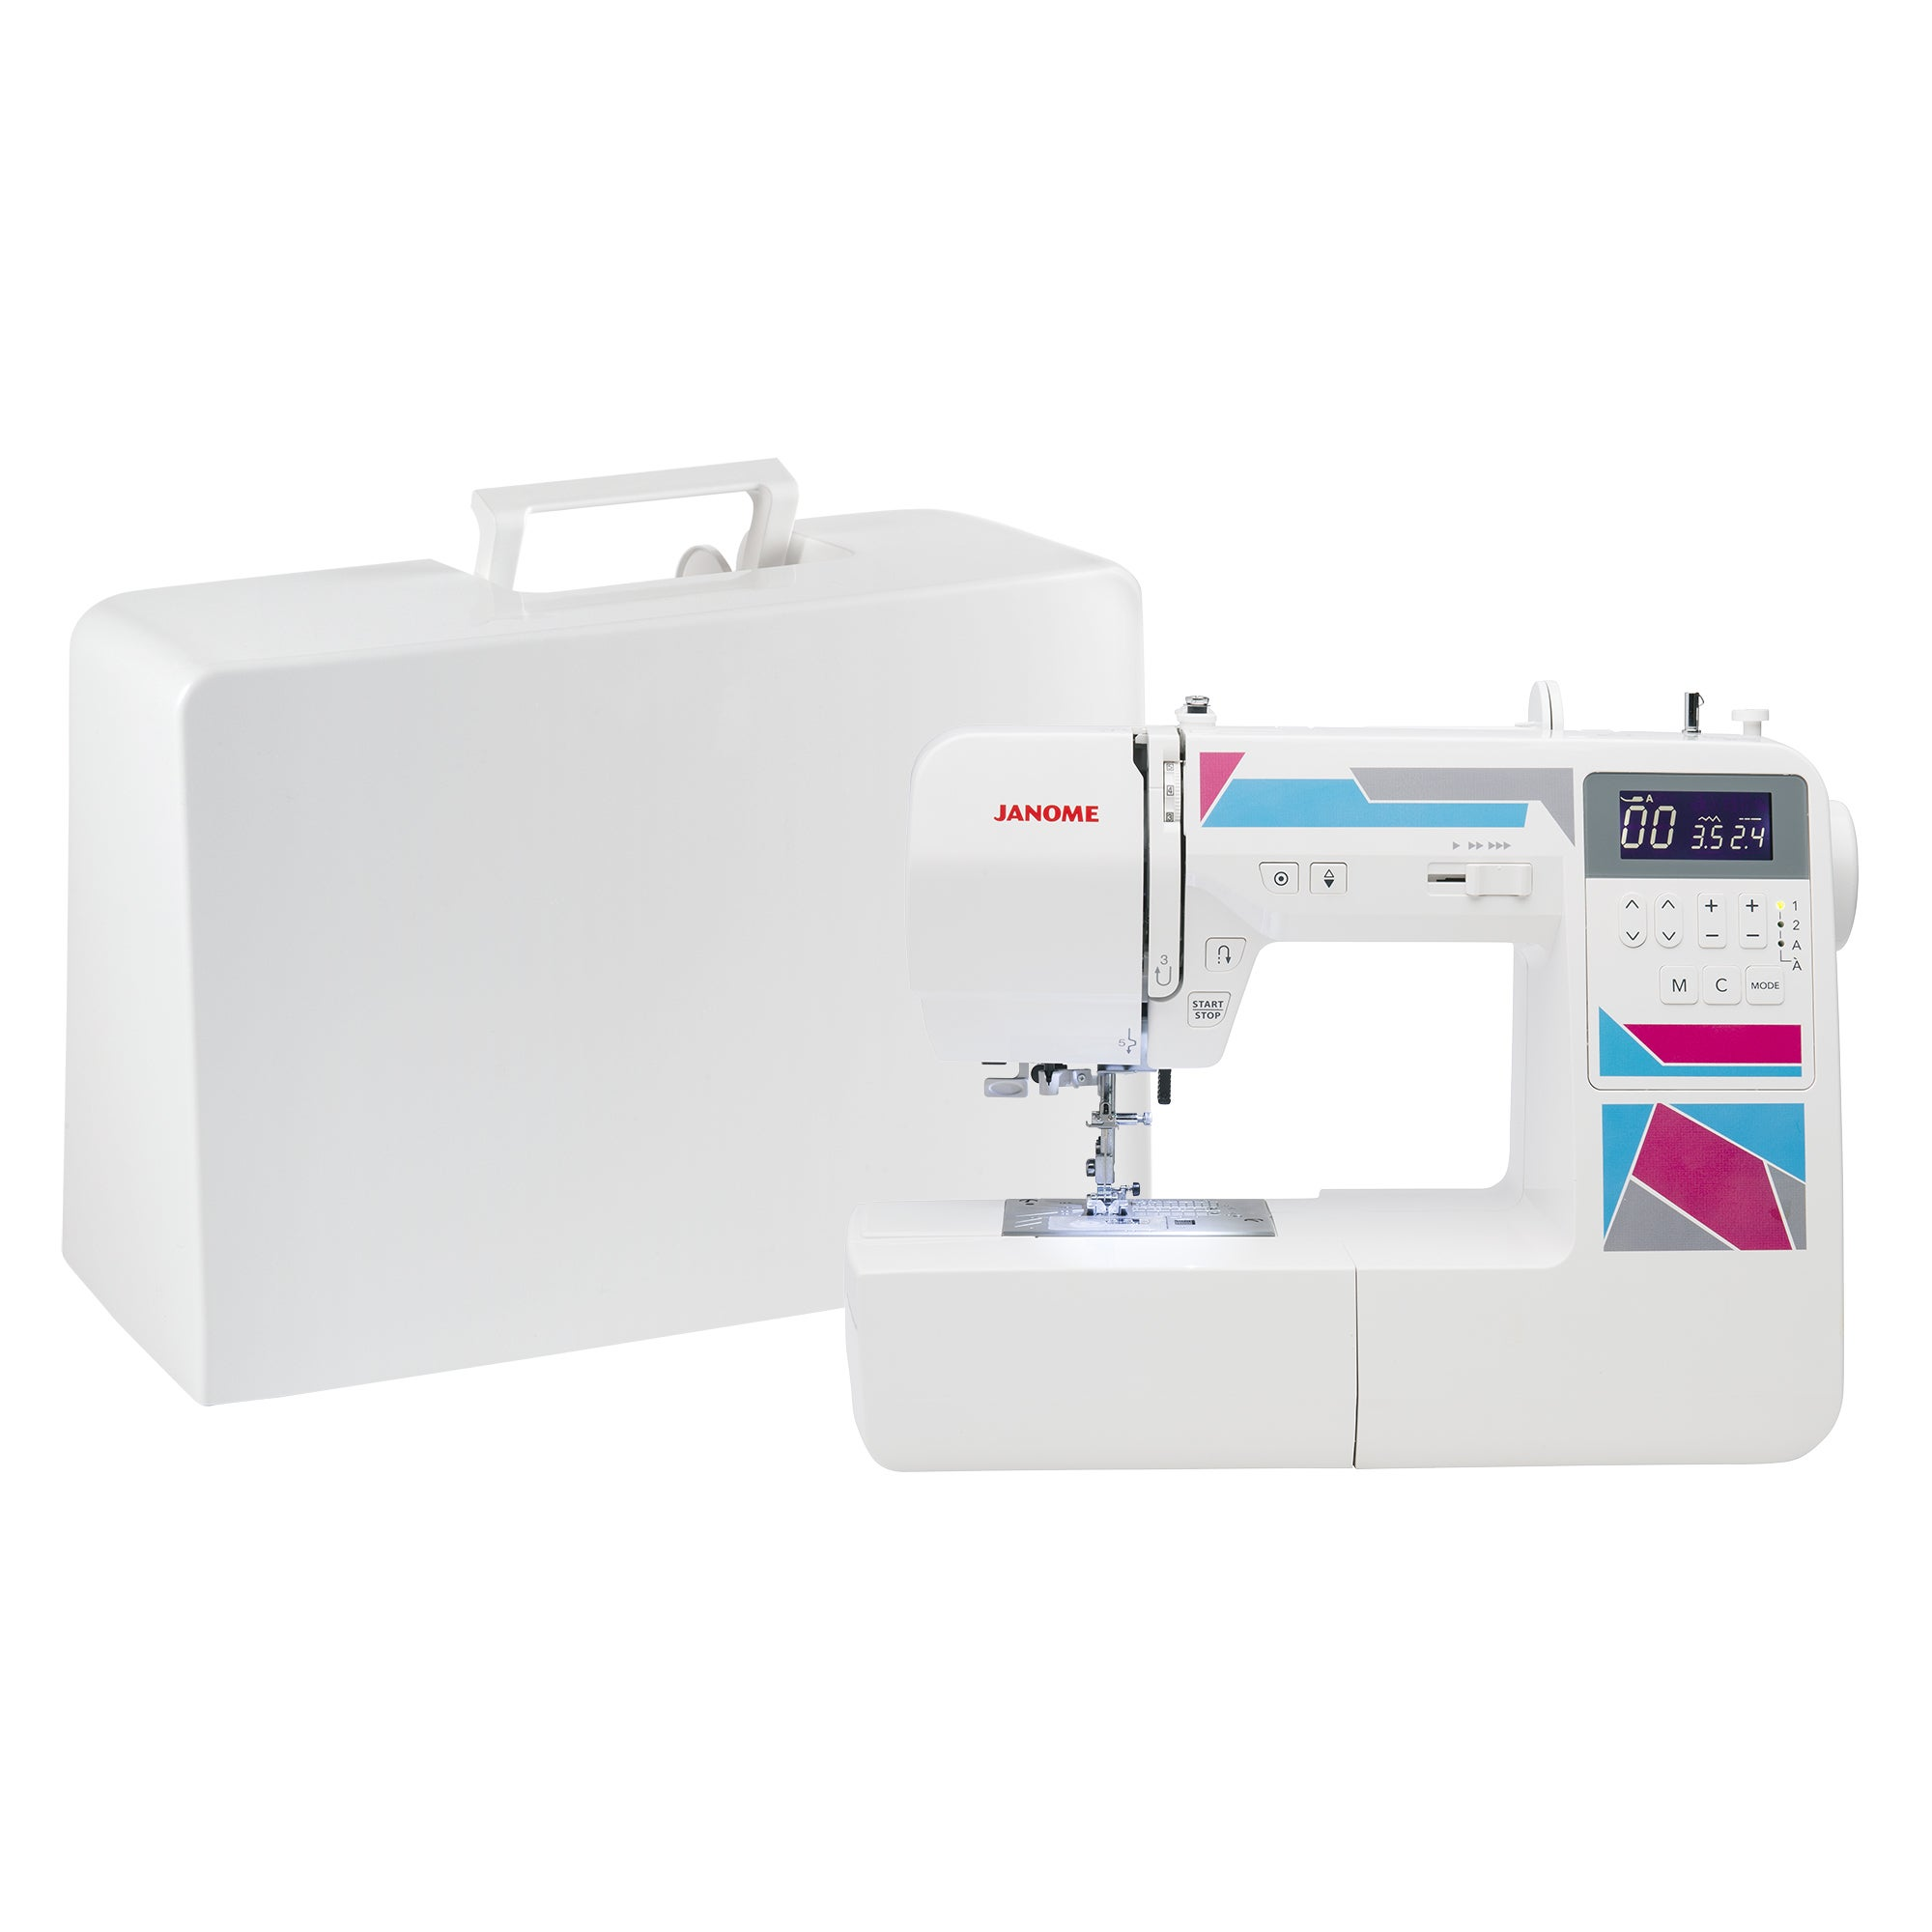 Janome MOD-200 Fully-featured Computerized Sewing Machine...